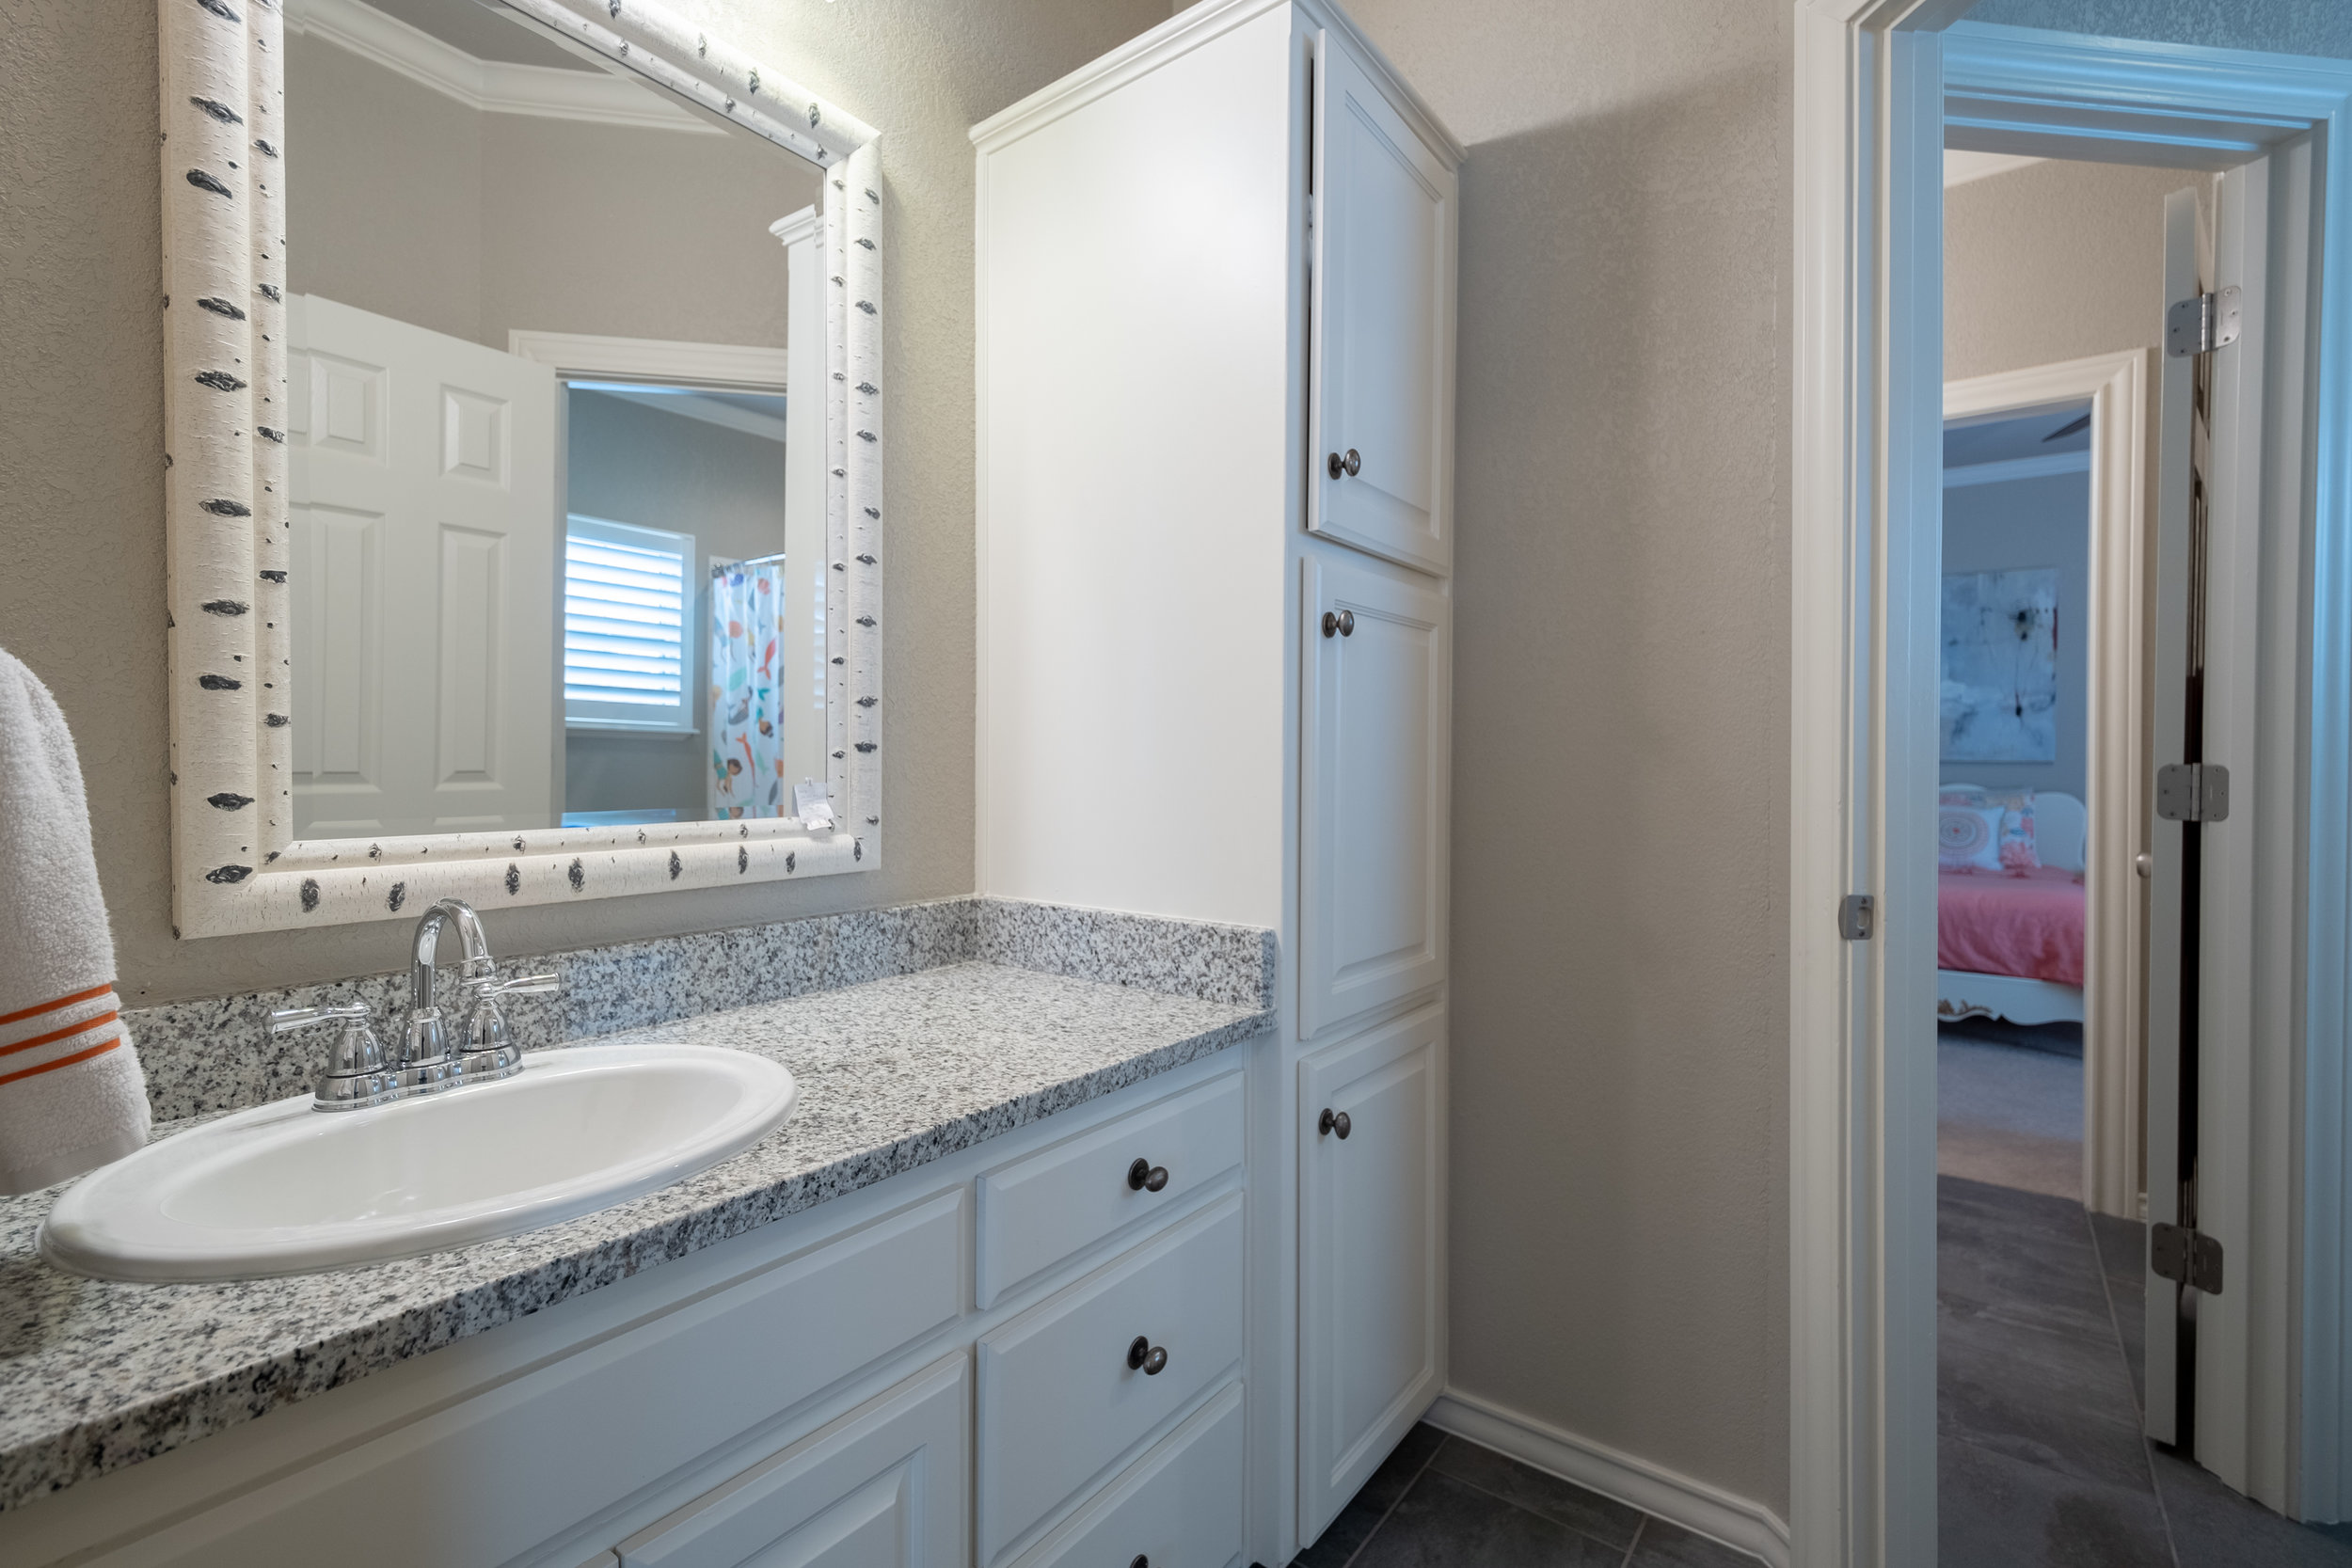 Bathroom 4-1.jpg